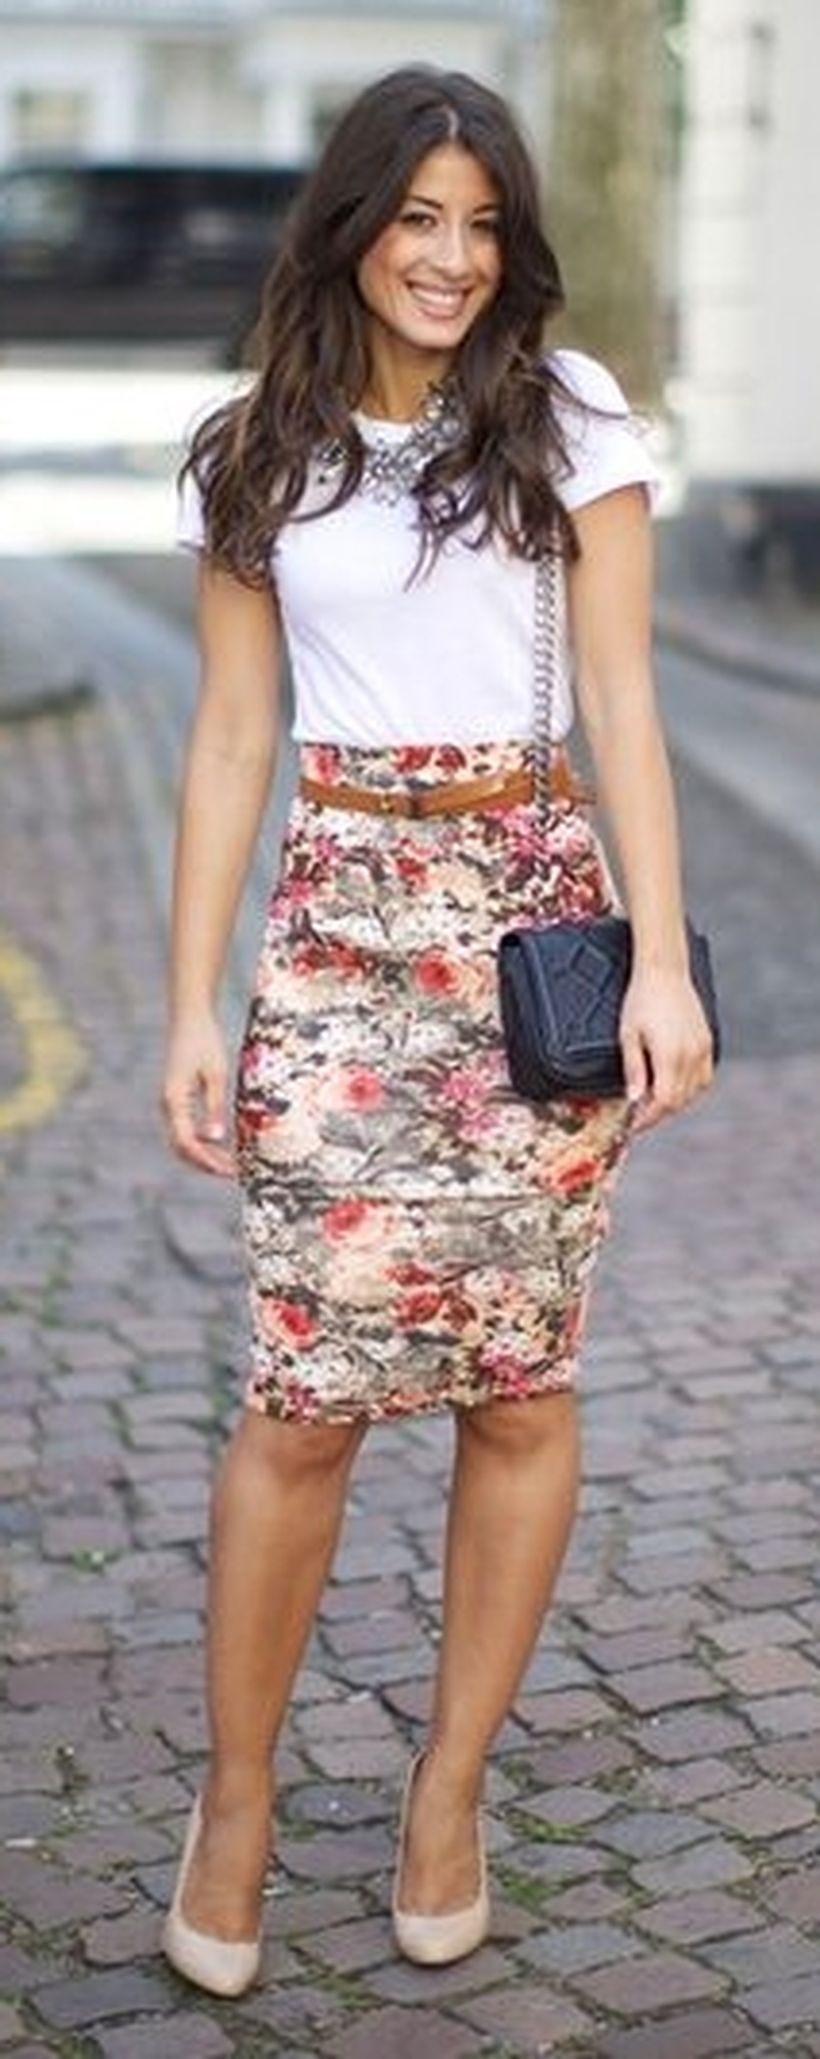 11 Everyday Natural Makeup Tutorials: Cool Tshirt And Skirt For Everyday Outfits 11